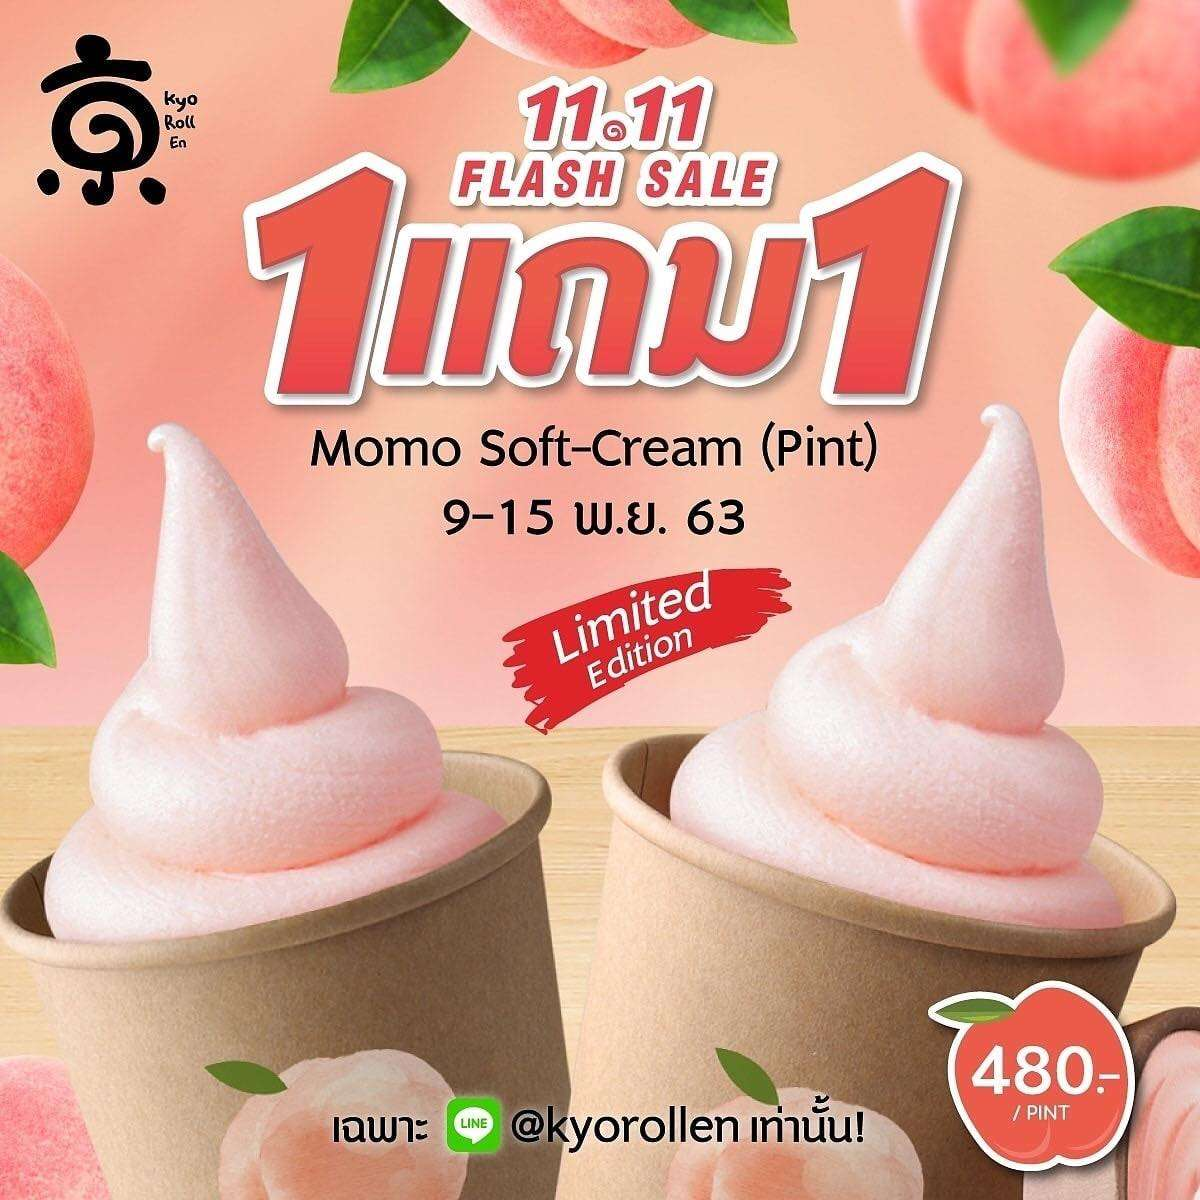 Momo Soft-Cream